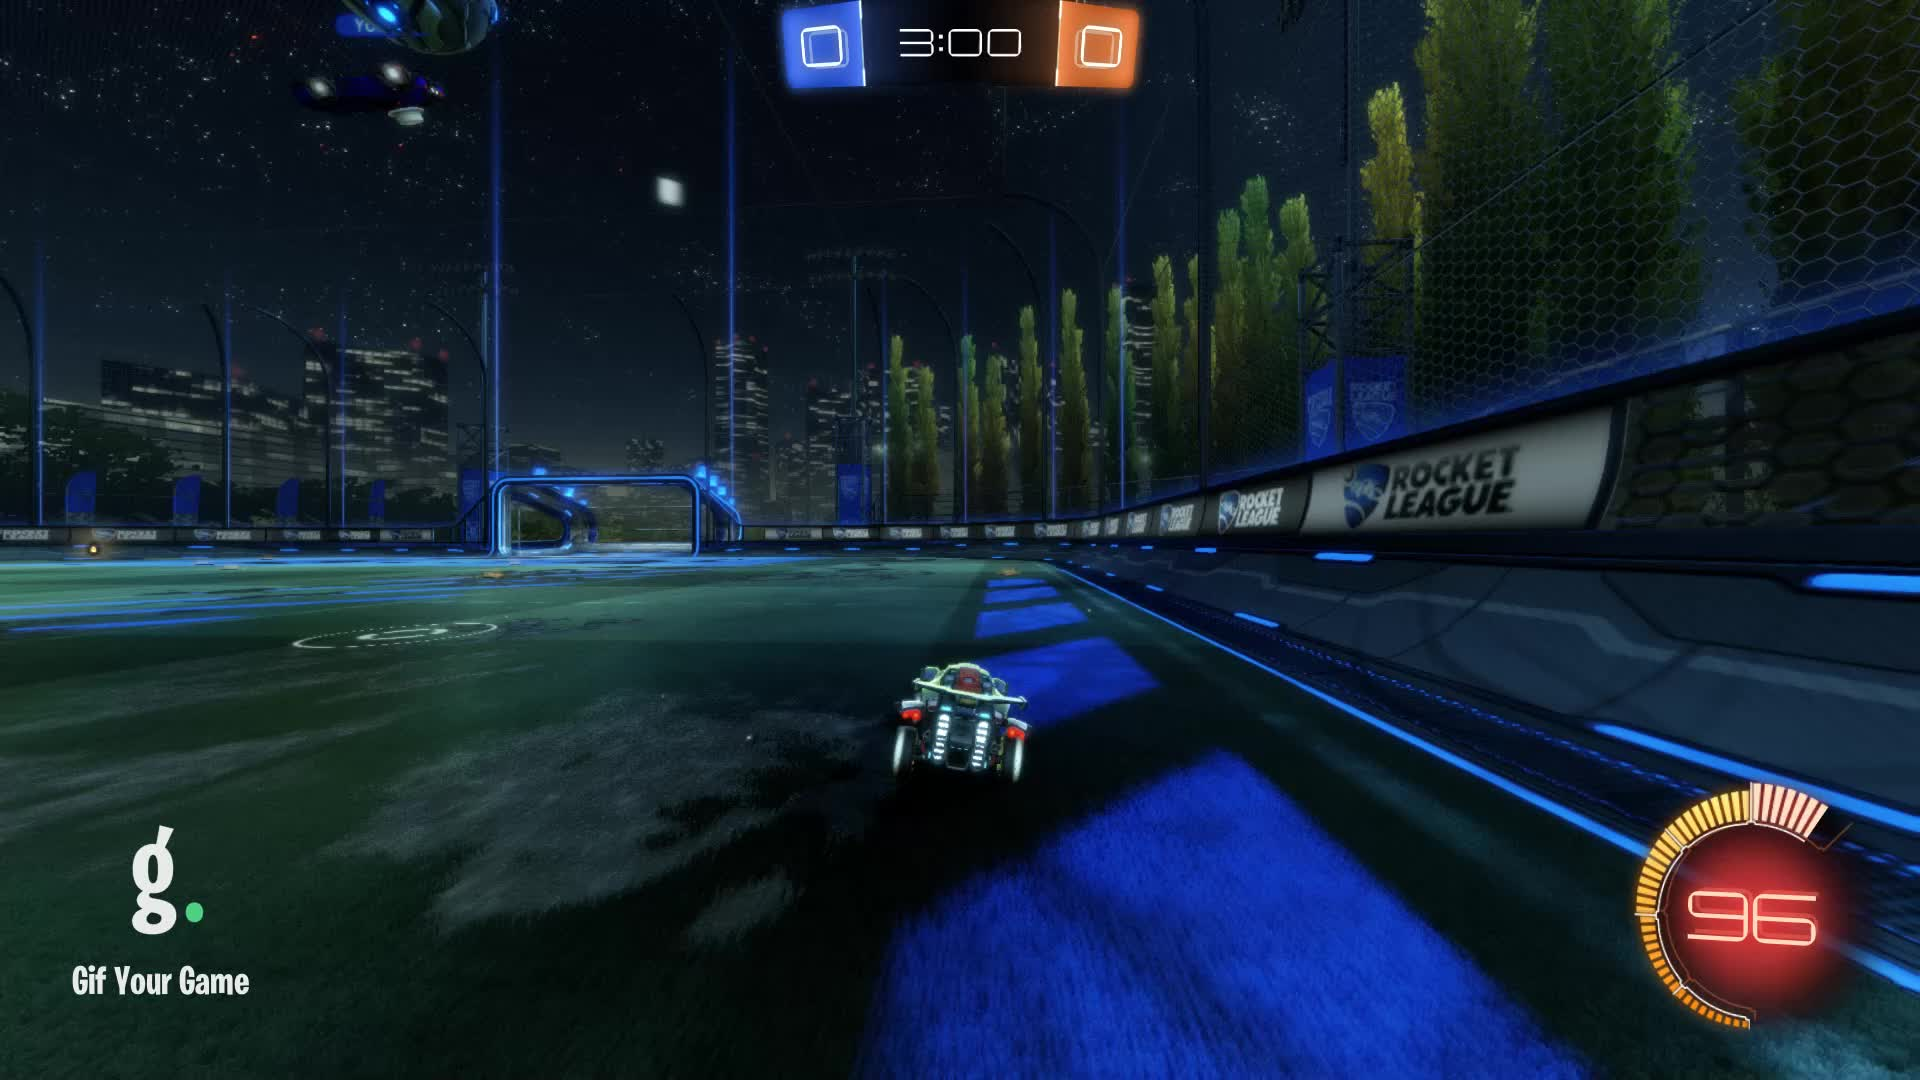 Gif Your Game, GifYourGame, ItWas...Justified, Rocket League, RocketLeague, Save, Save 3: ItWas...Justified GIFs